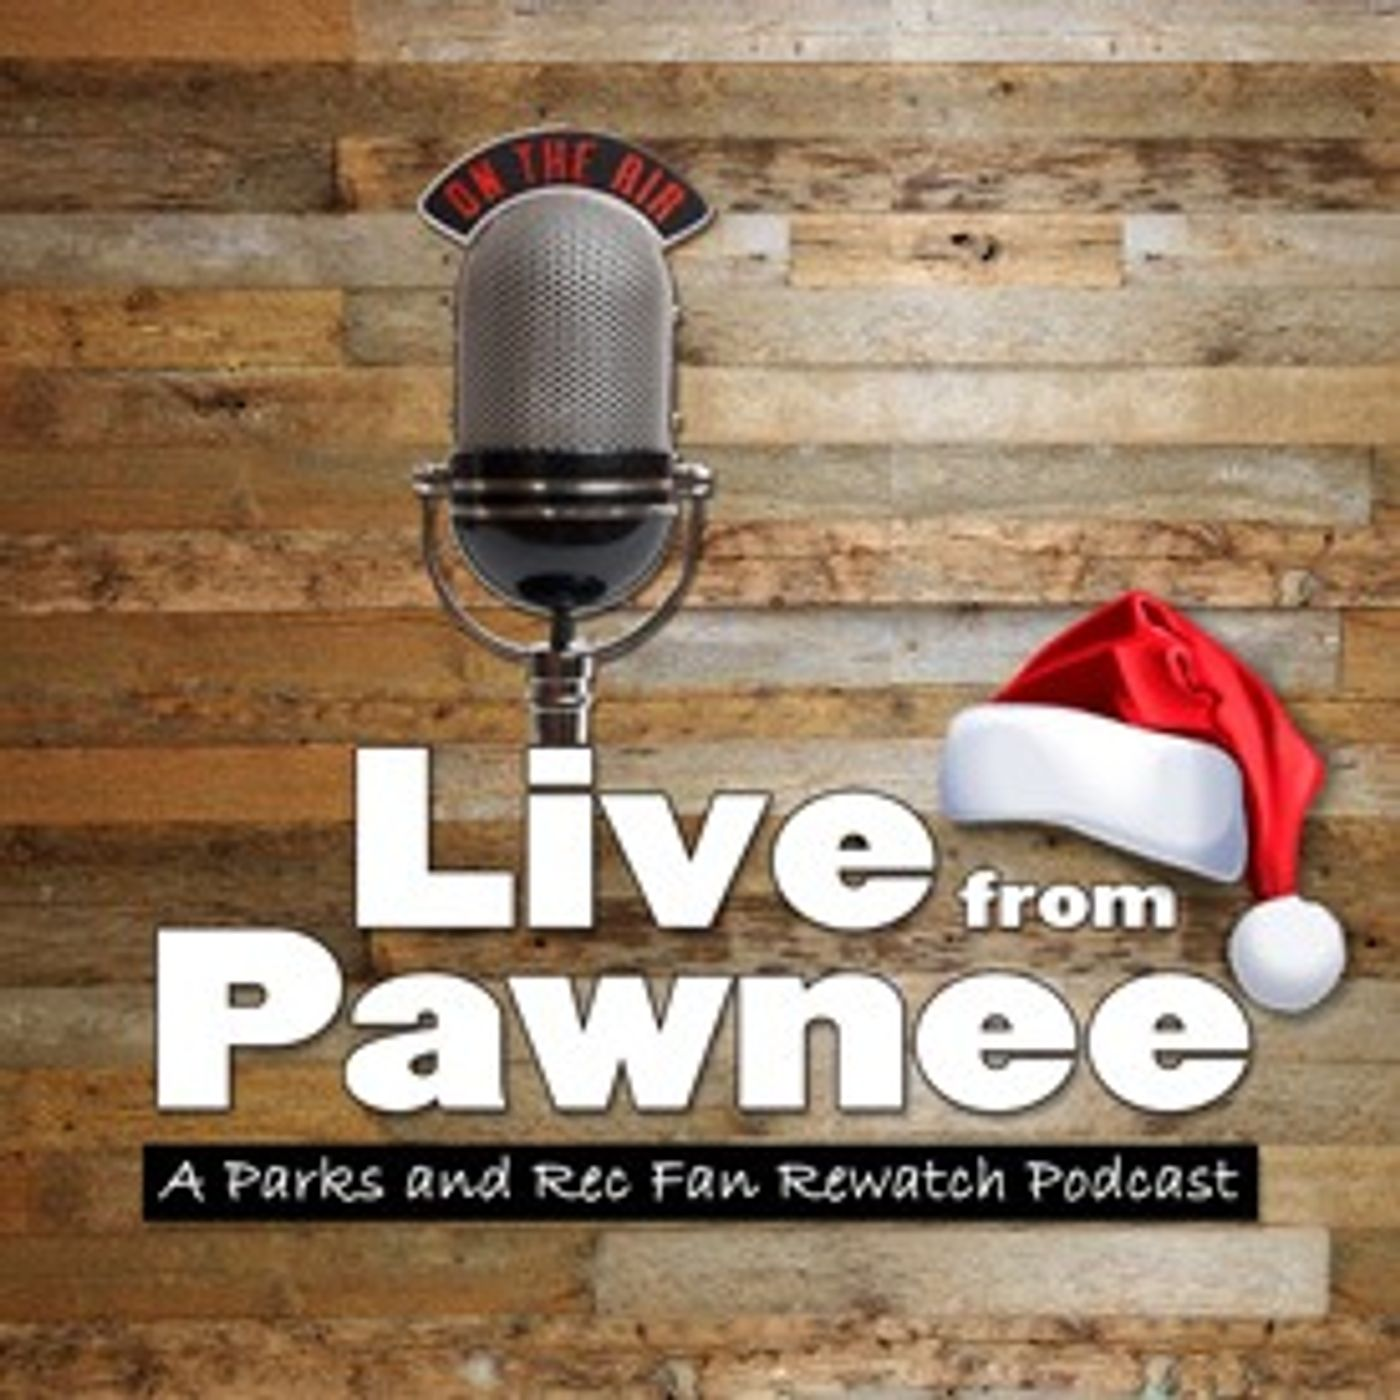 Happy Holidays from Ron Swanson and Live from Pawnee!